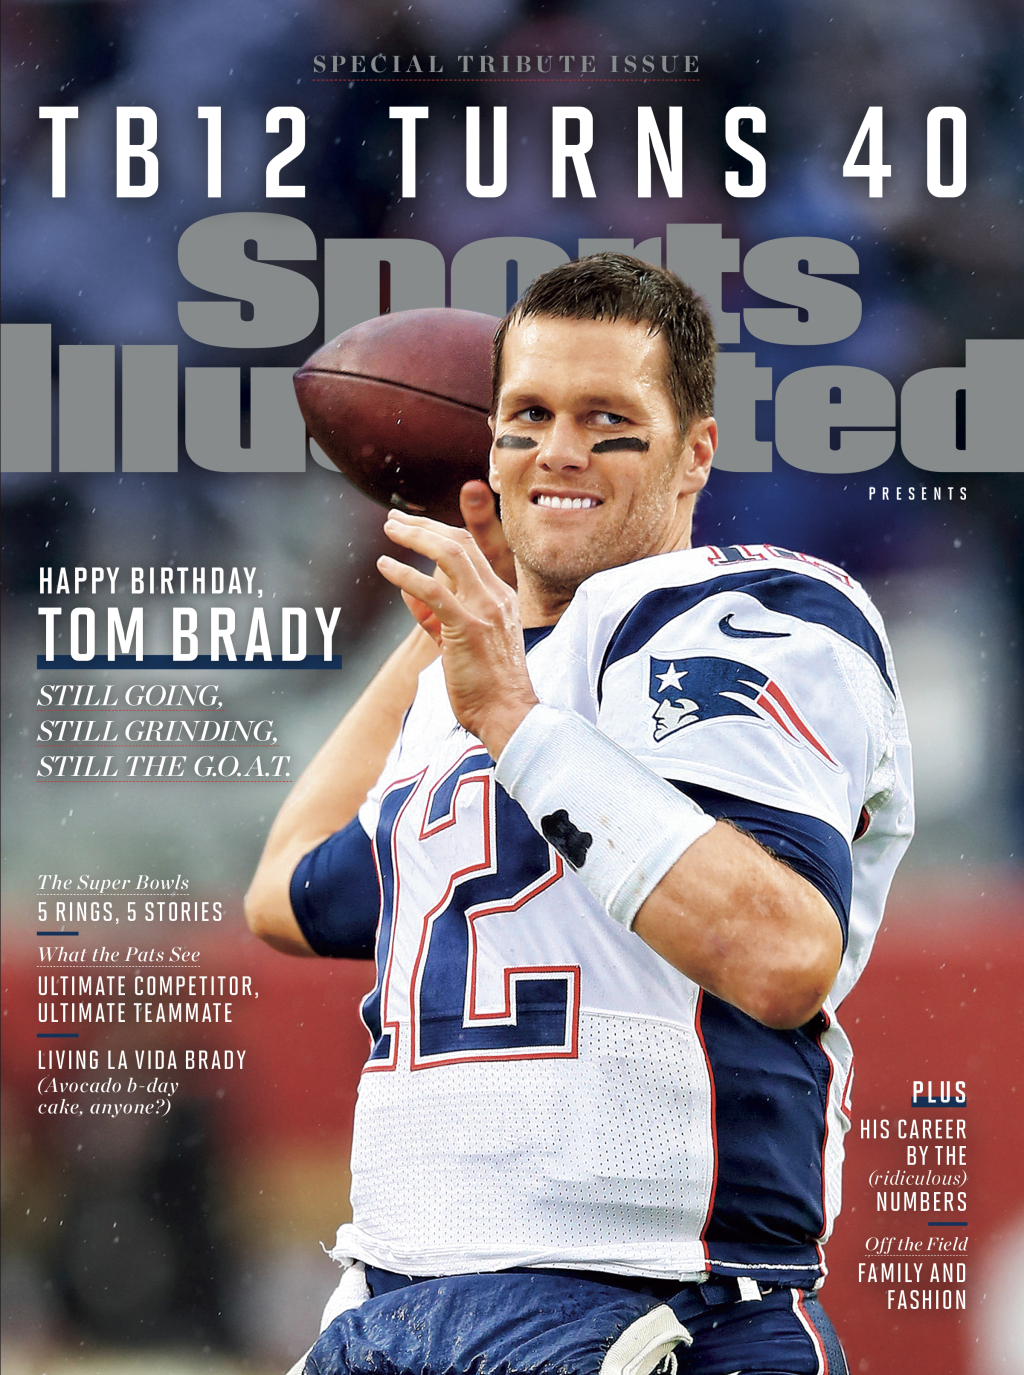 SPECIAL TRIBUTE ISSUE : TB12 TURNS 40